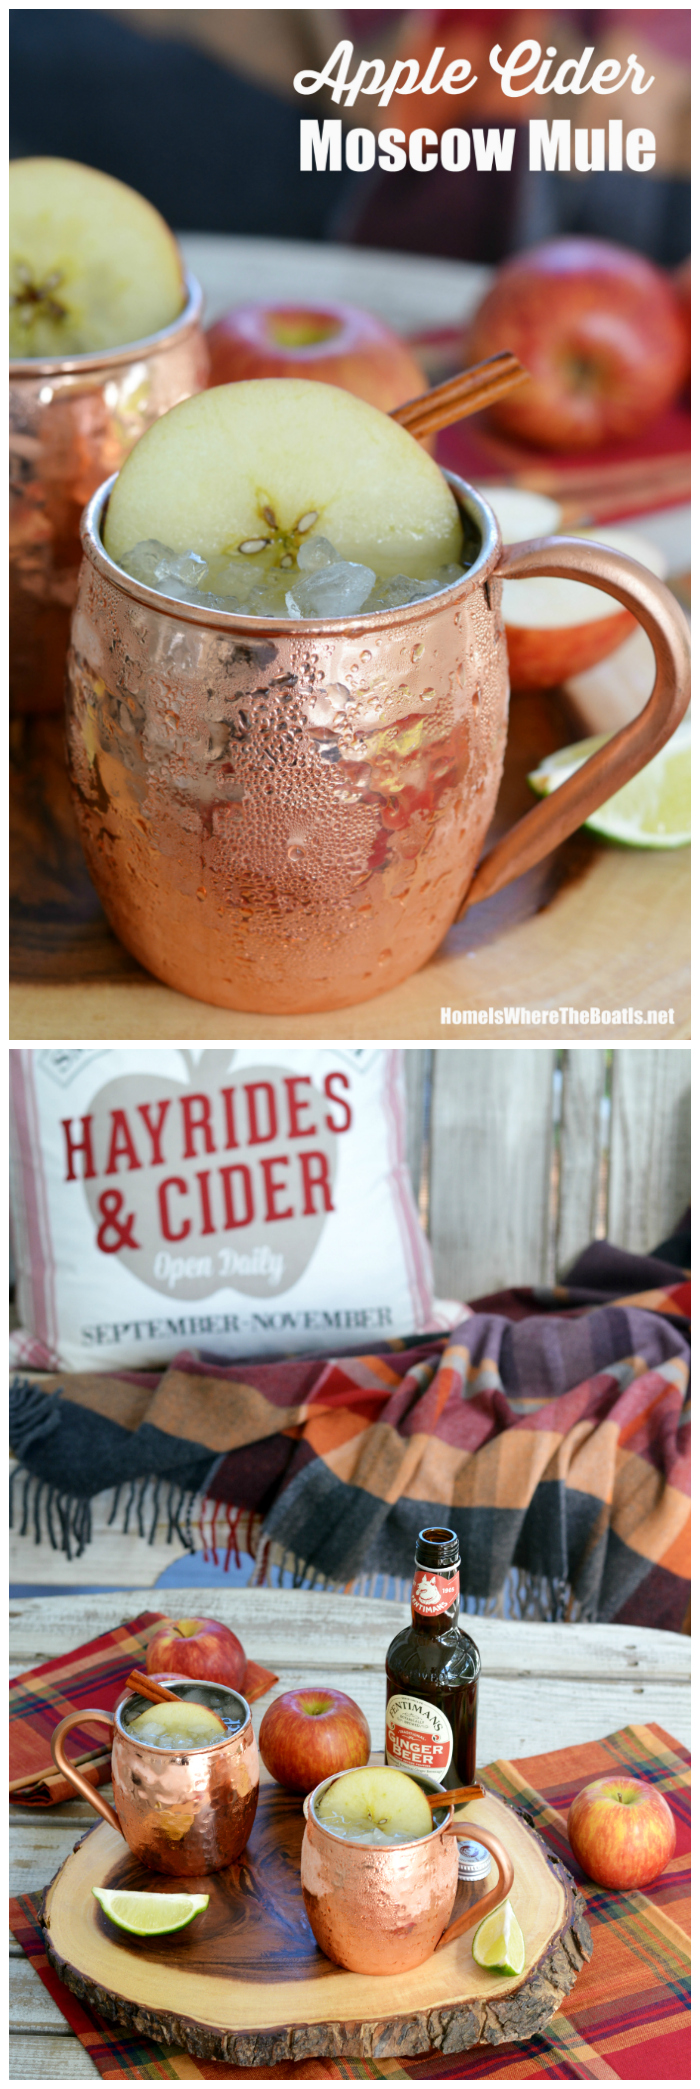 Apple Cider Moscow Mule | ©homeiswheretheboatis.net #fall #cocktail #applecider